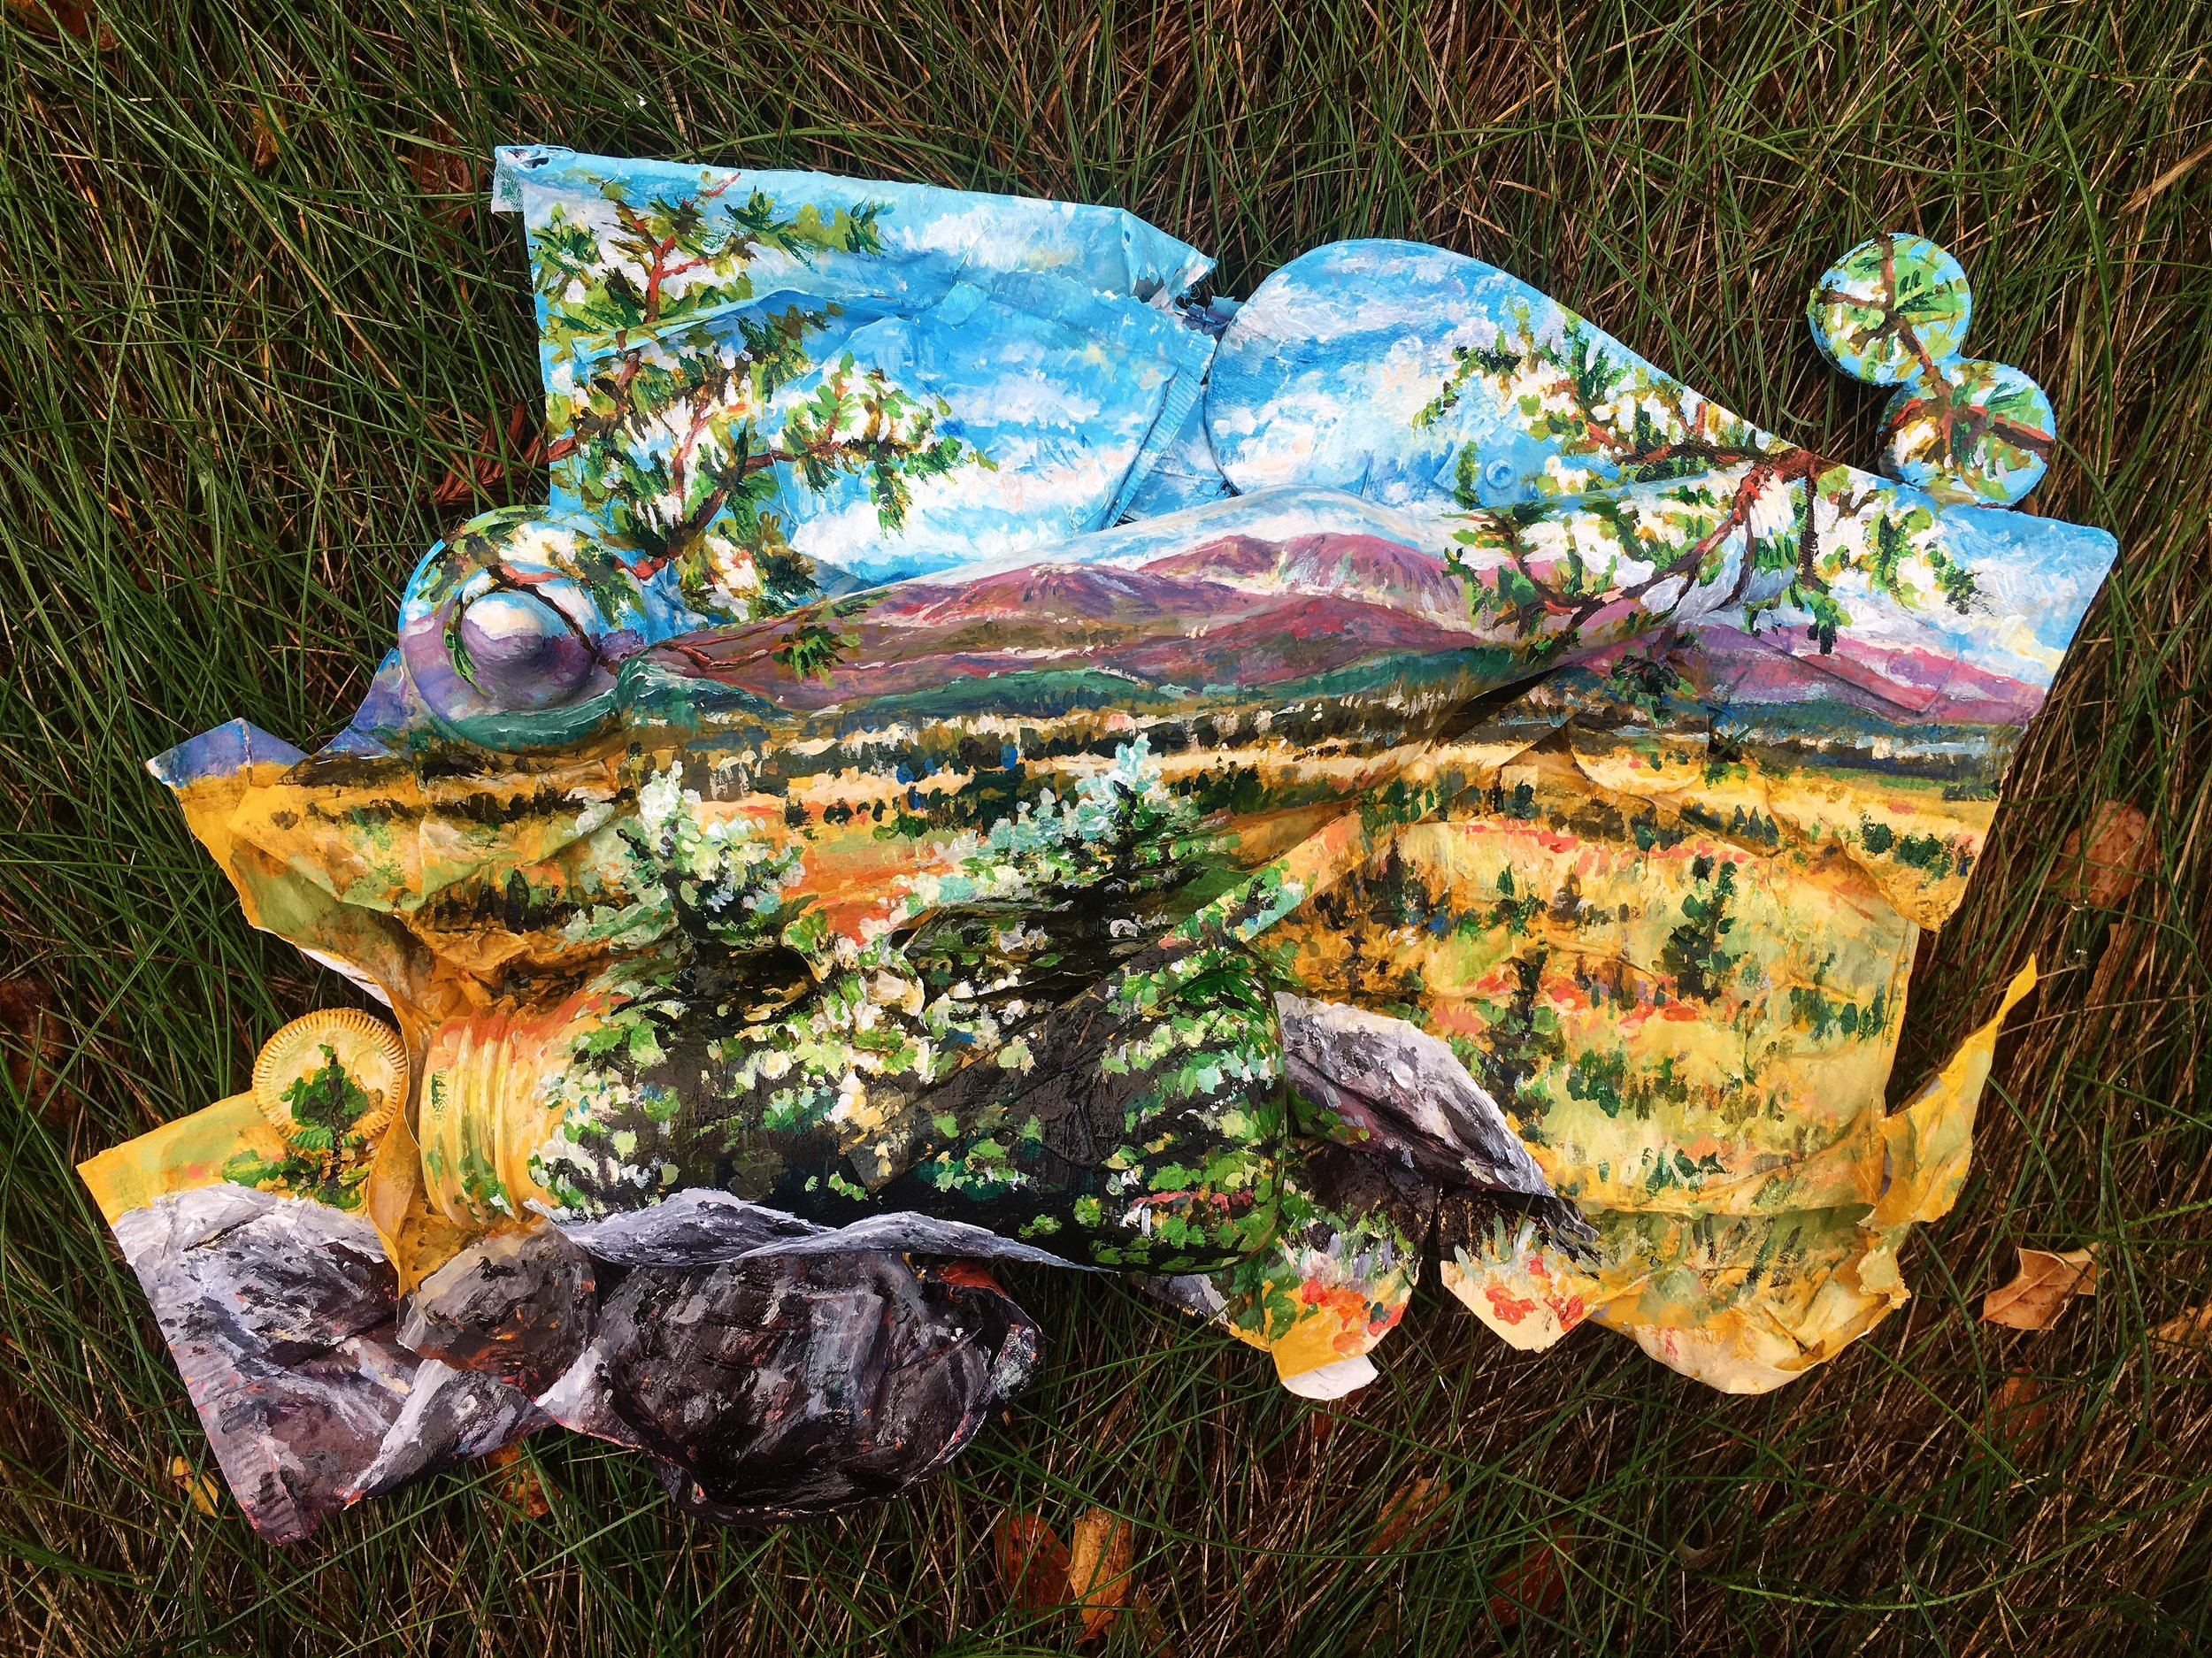 Acrylic on Trash found at the Rocky Mountain National Park (Beer bottle, bottle caps, baby bottle, shoe sole, plastic wrappers)